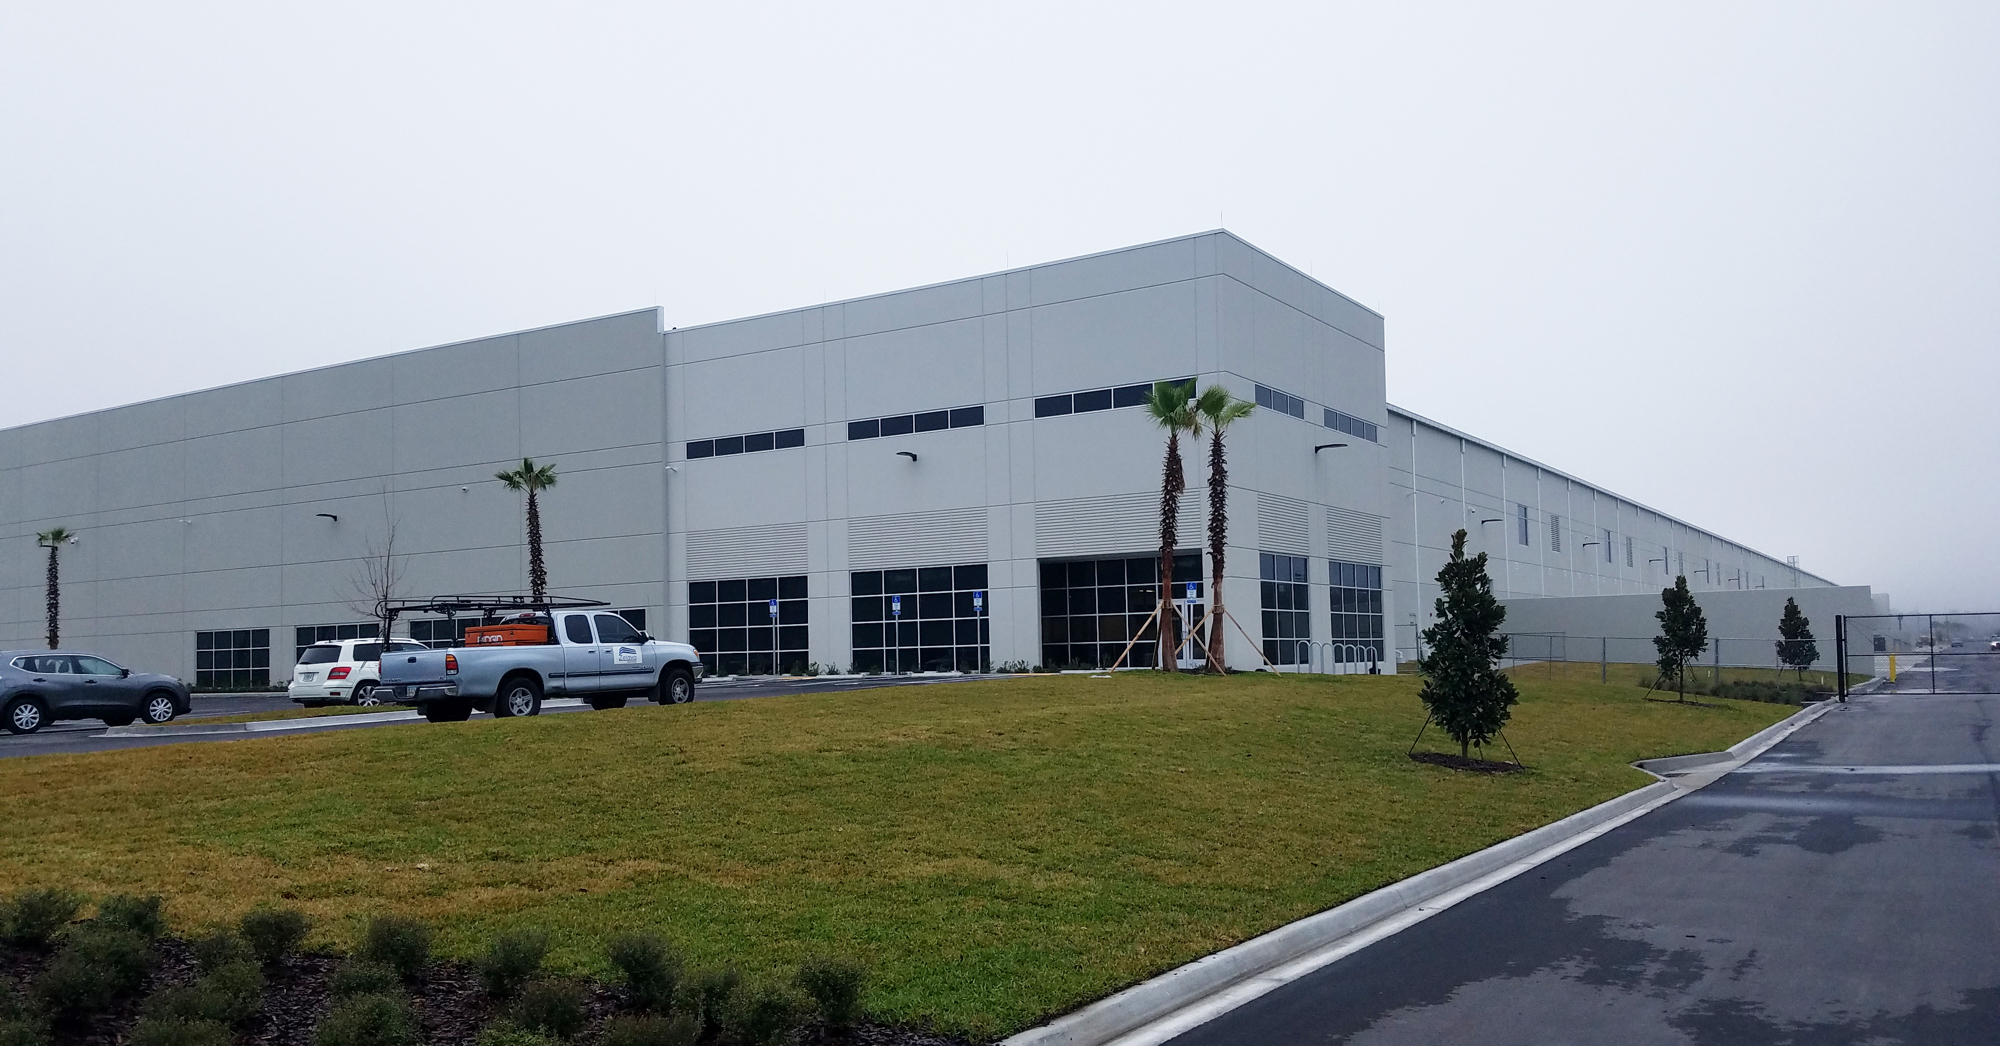 Wayfair To Open Jacksonville Fulfillment Center This Summer Jax Daily Record Jacksonville Daily Record Jacksonville Florida